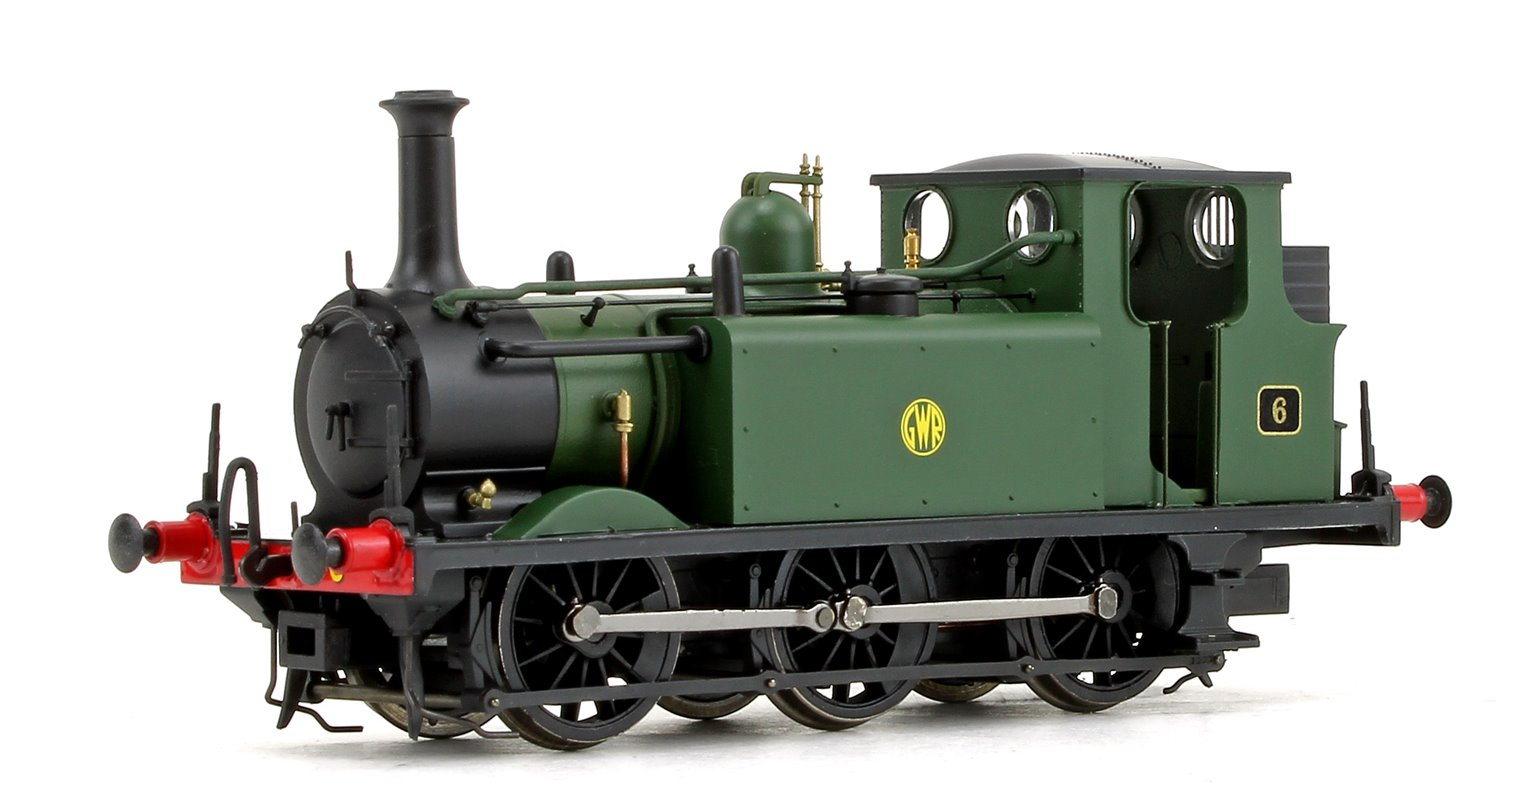 Stroudley Terrier A1X Class GWR Green 0-6-0 Tank Locomotive No.6 DCC Ready